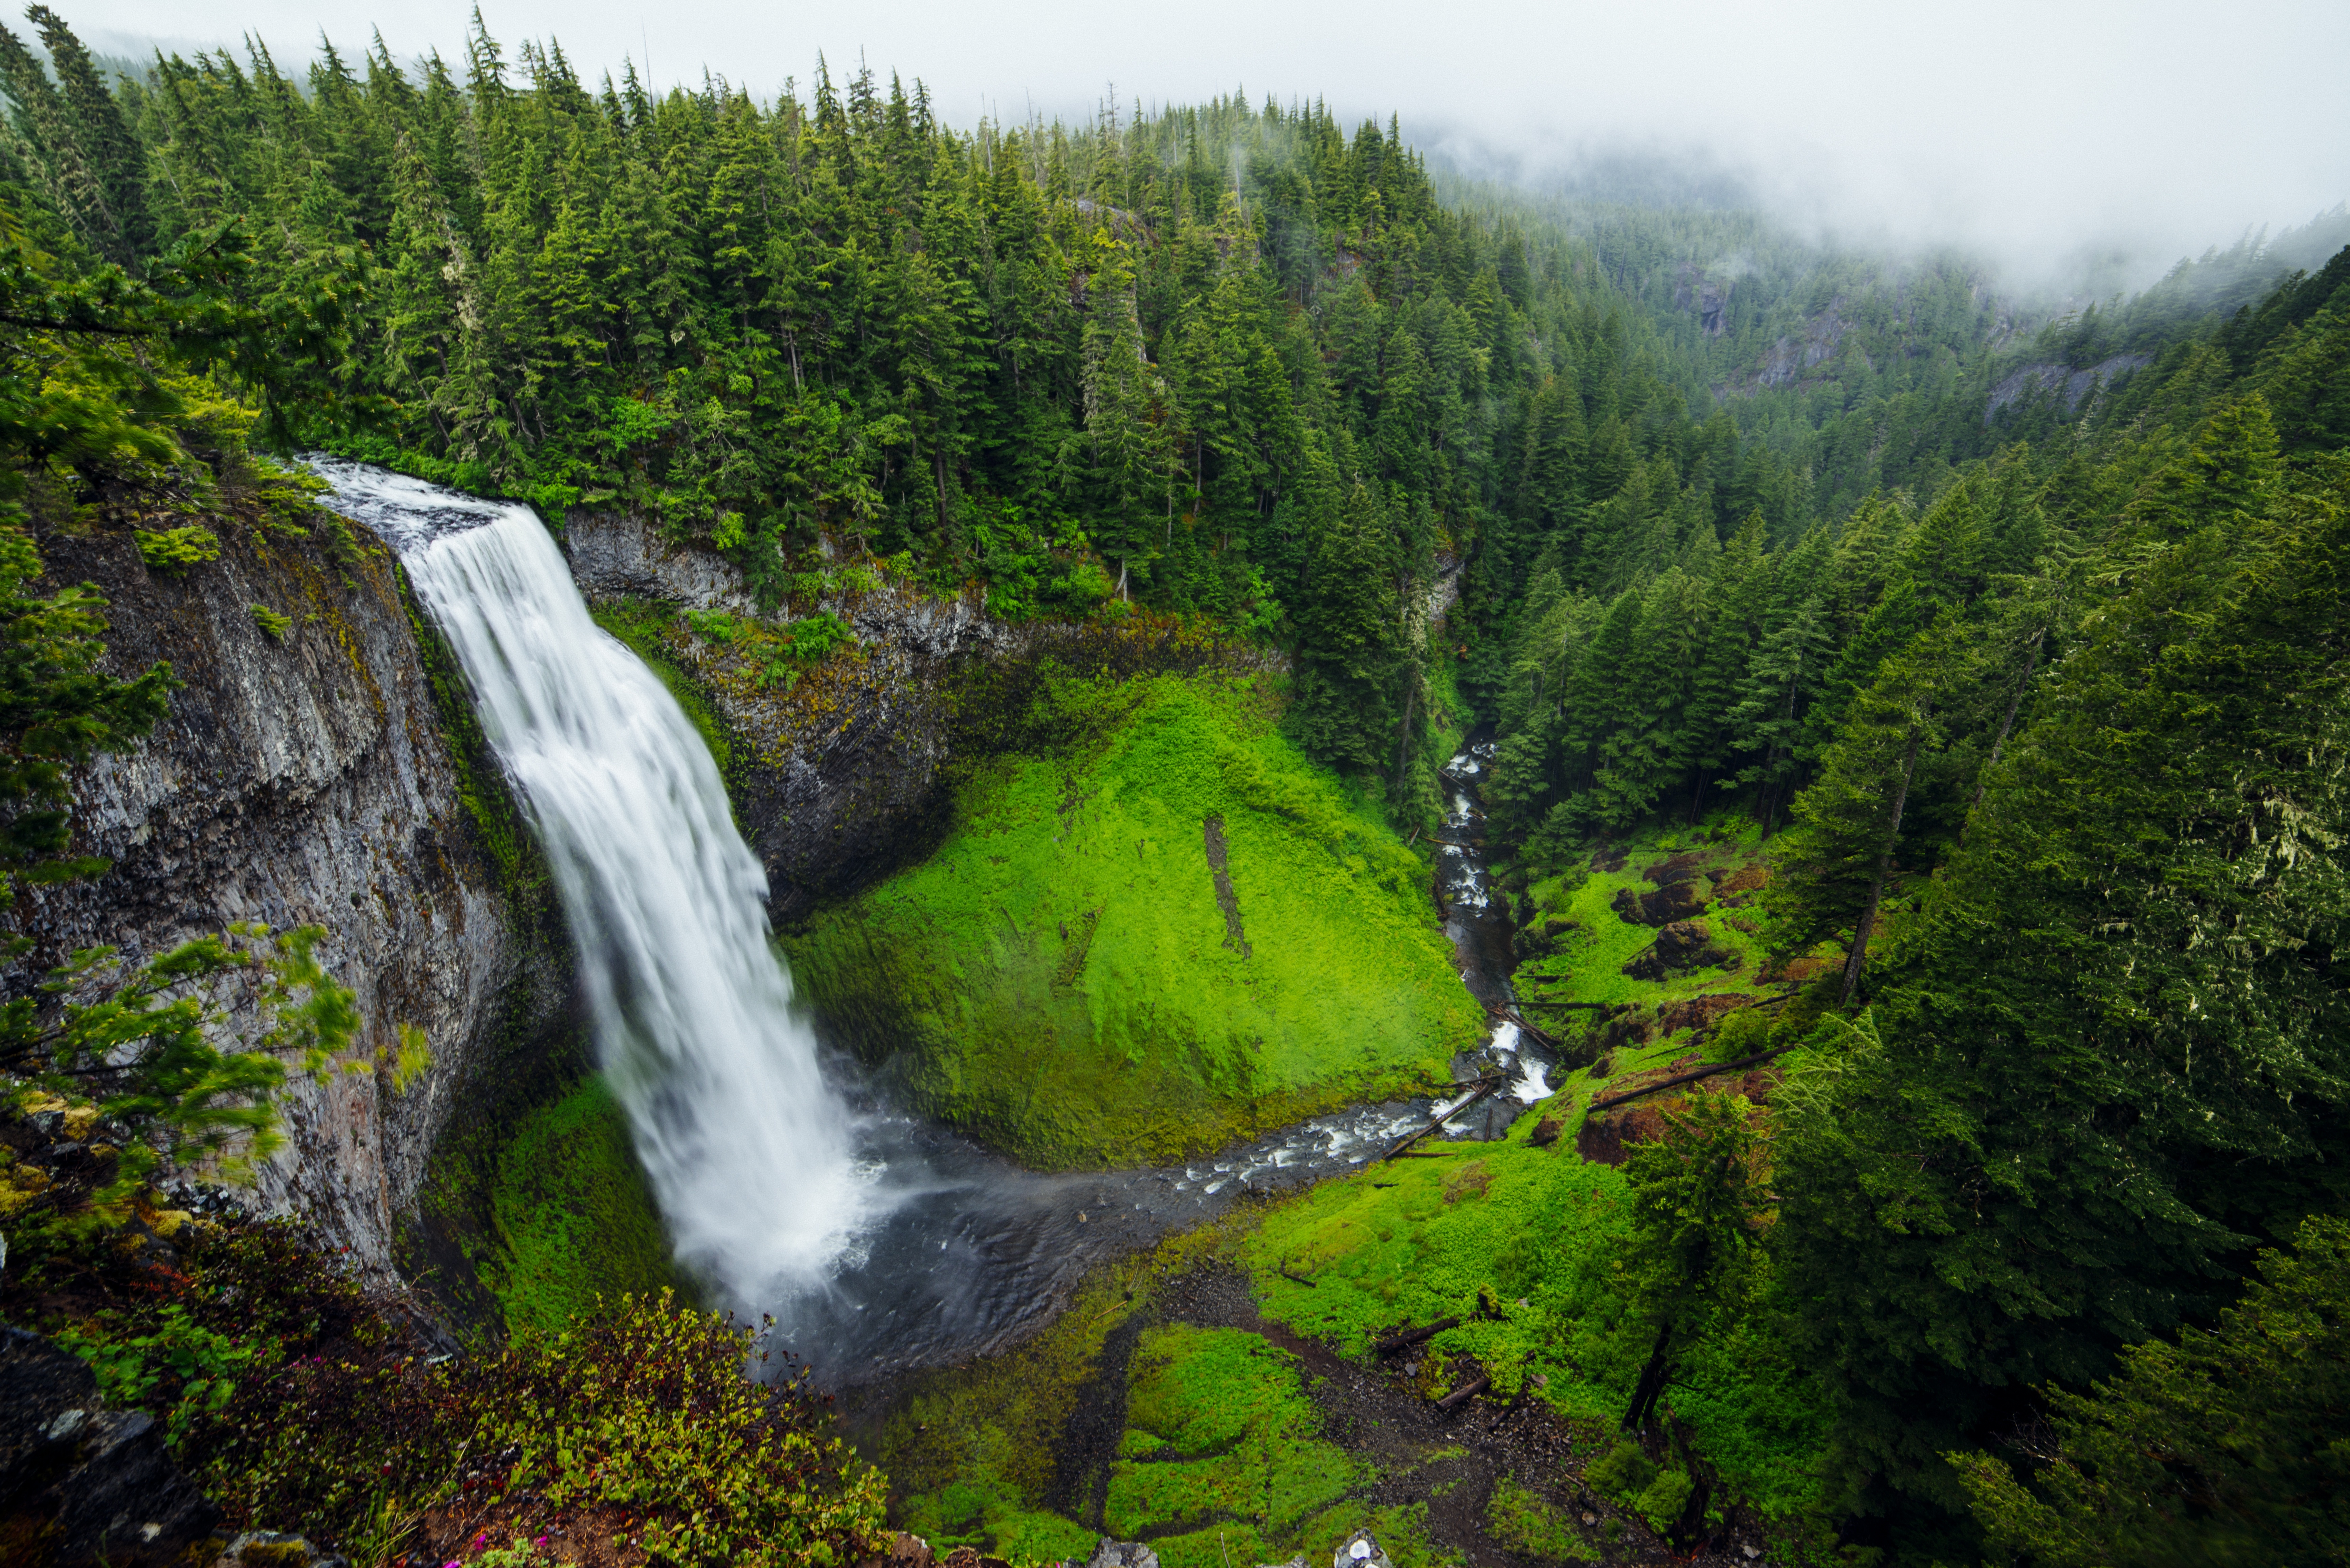 Cliff Fog Forest Moss Nature Stream Waterfall 6945x4635